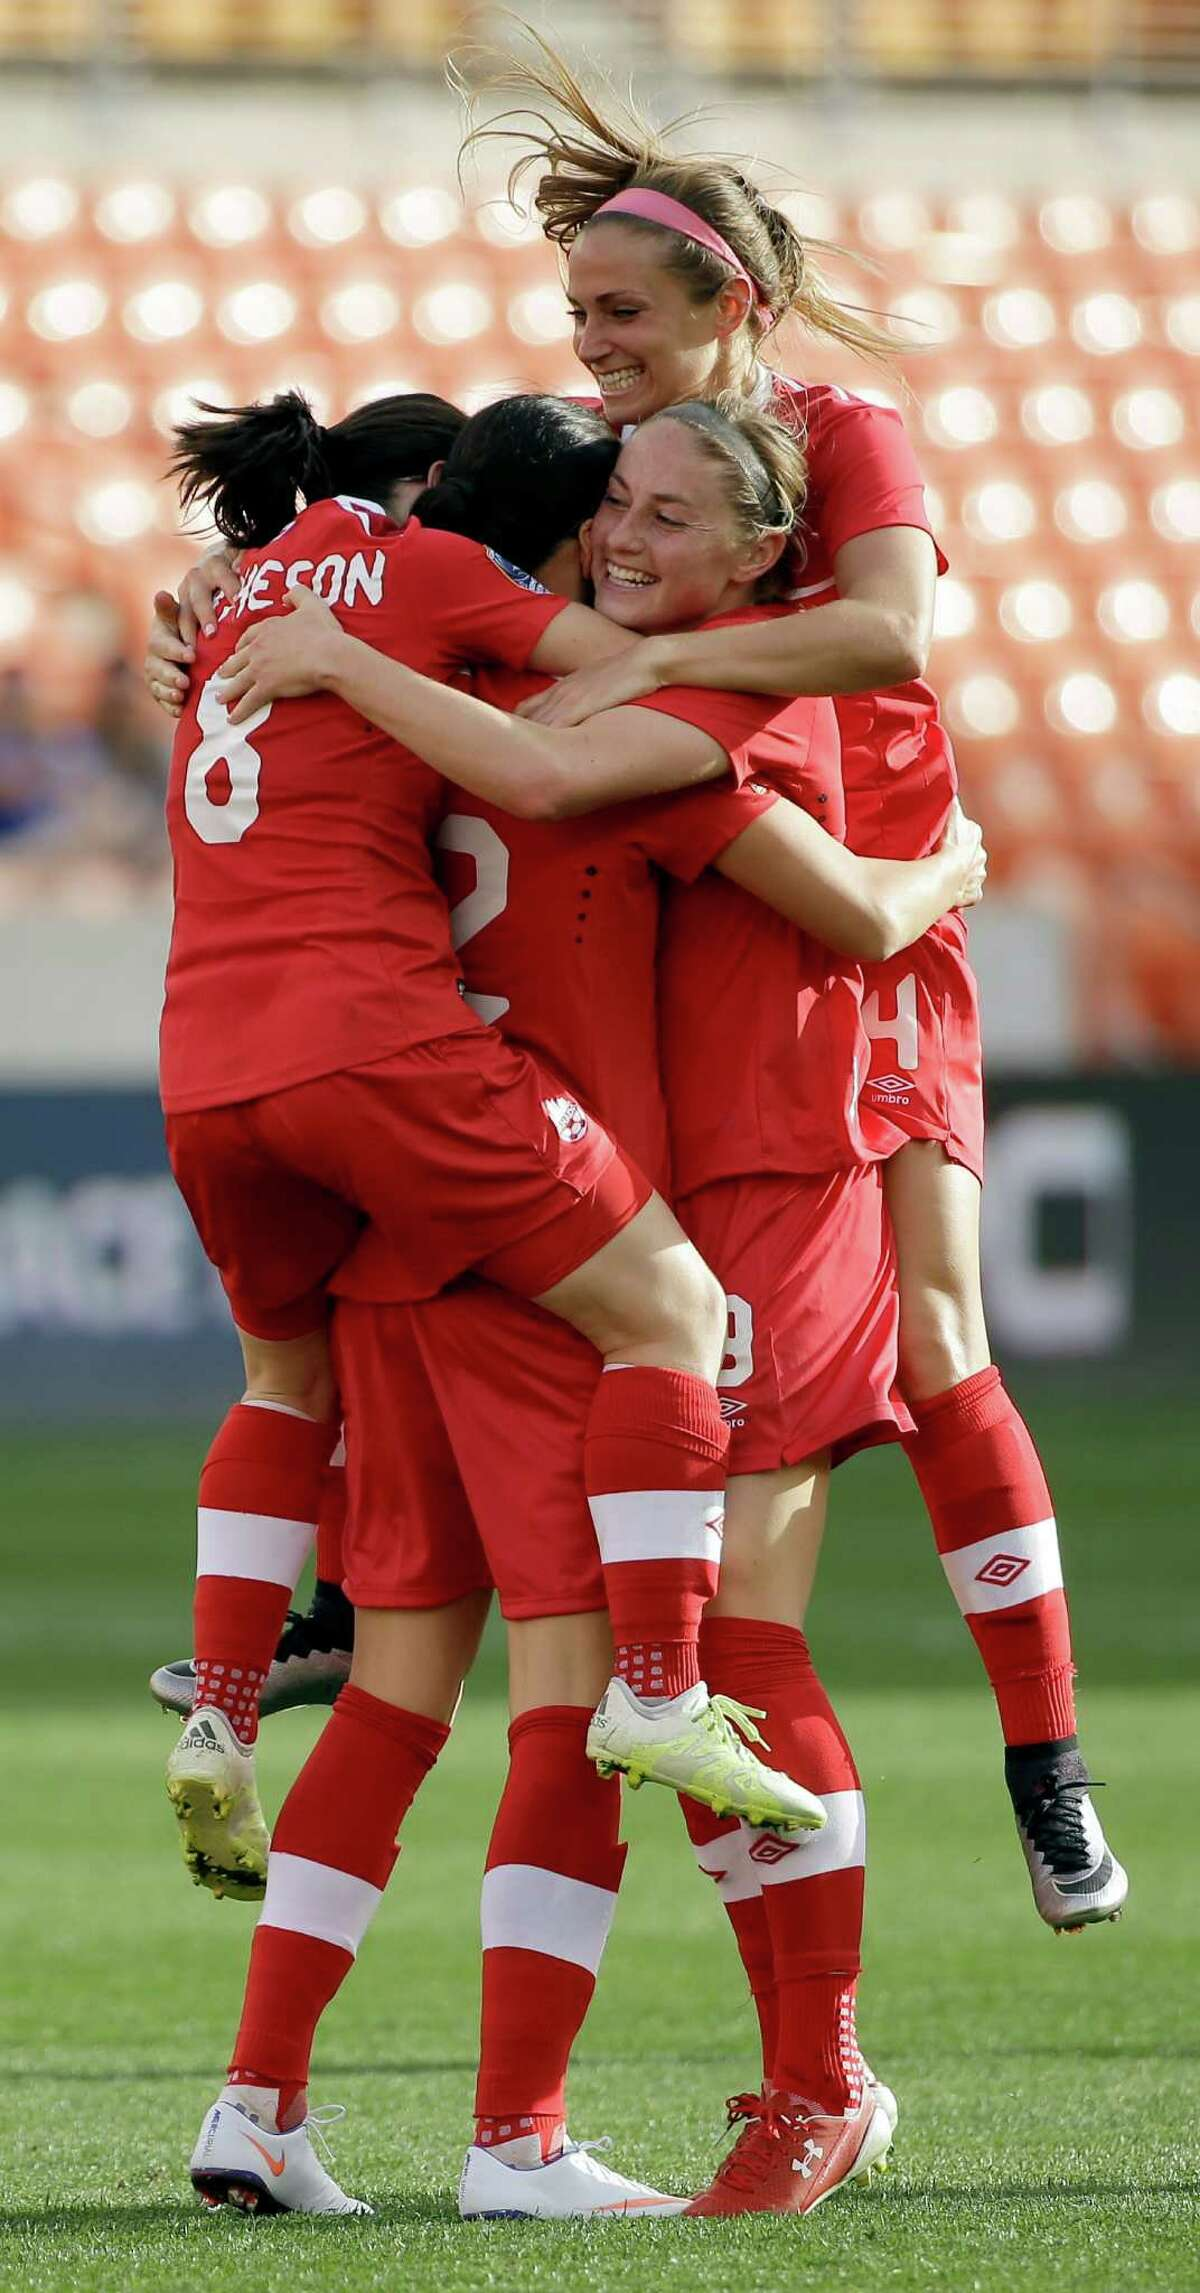 Canada's Christine Sinclair, second from left, is mobbed by teammates Diana Matheson (8), Janine Beckie, right, and Shelina Zadorsky (4) after scoring a goal against Trinidad & Tobago during the second half of a CONCACAF Olympic qualifying tournament soccer match Sunday, Feb. 14, 2016, in Houston. Canada won 6-0. (AP Photo/David J. Phillip)